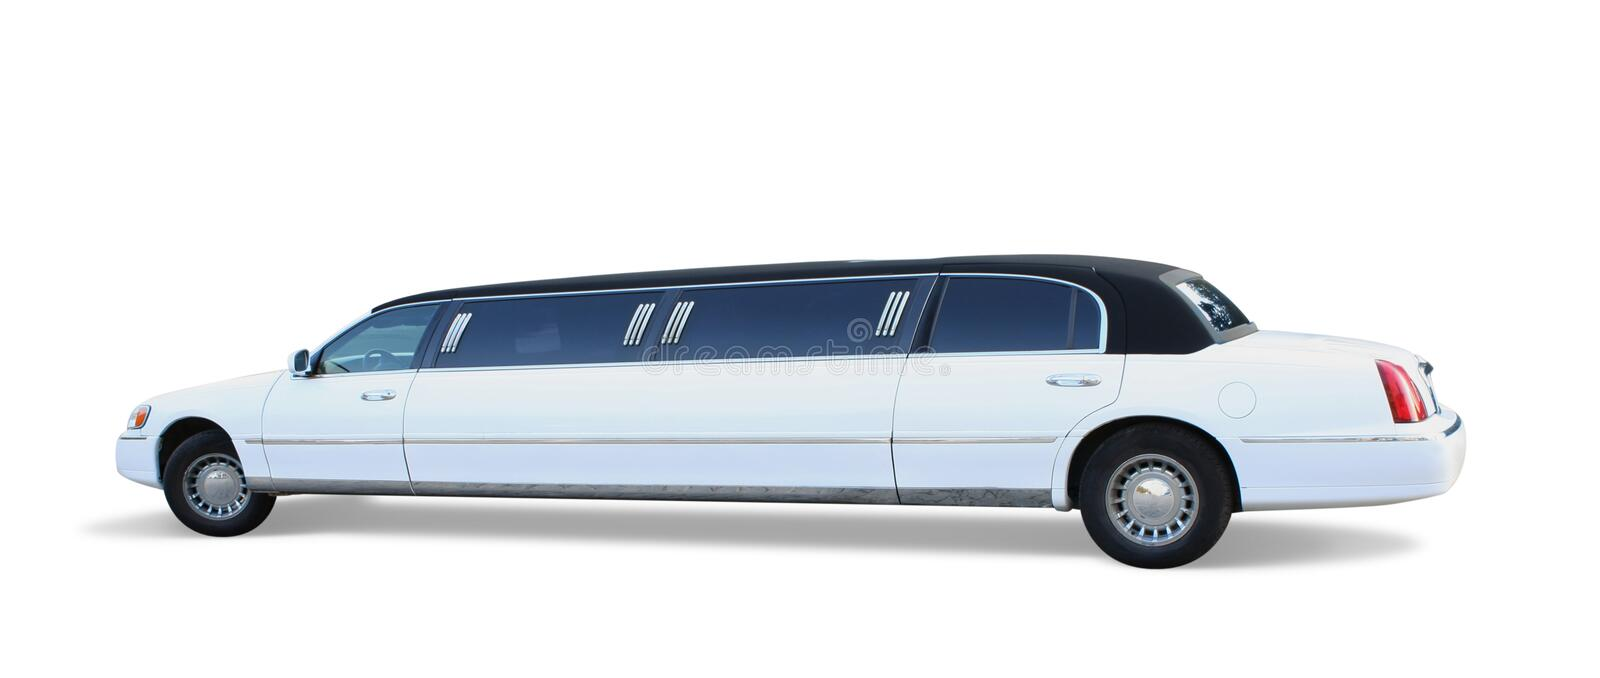 White Limousine stock photo